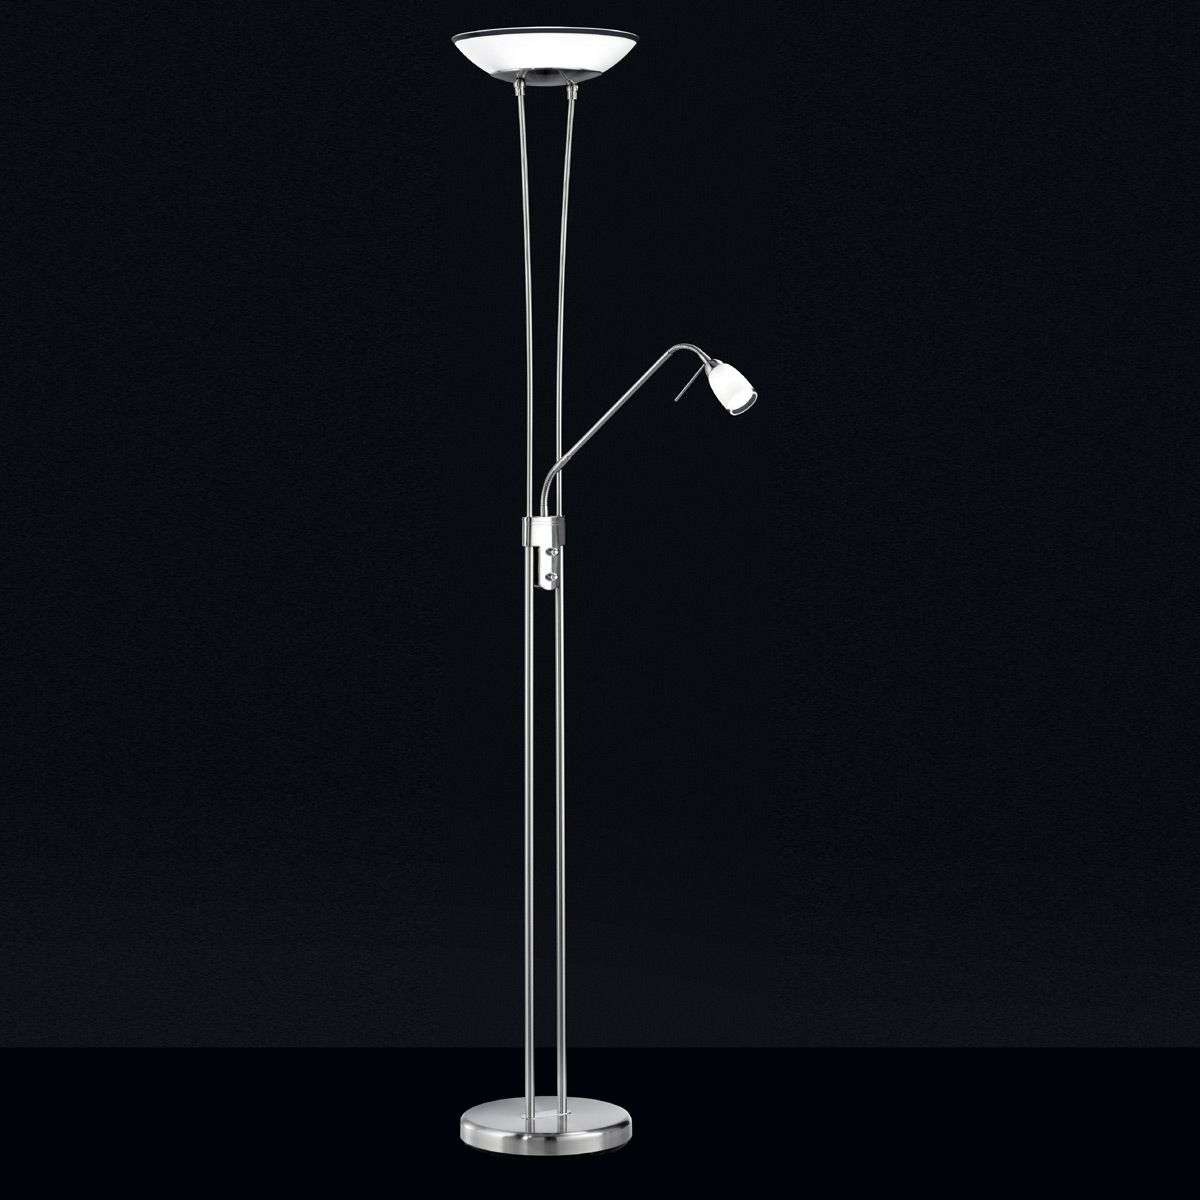 Dimmable floor lamp ERIC-9004380-31